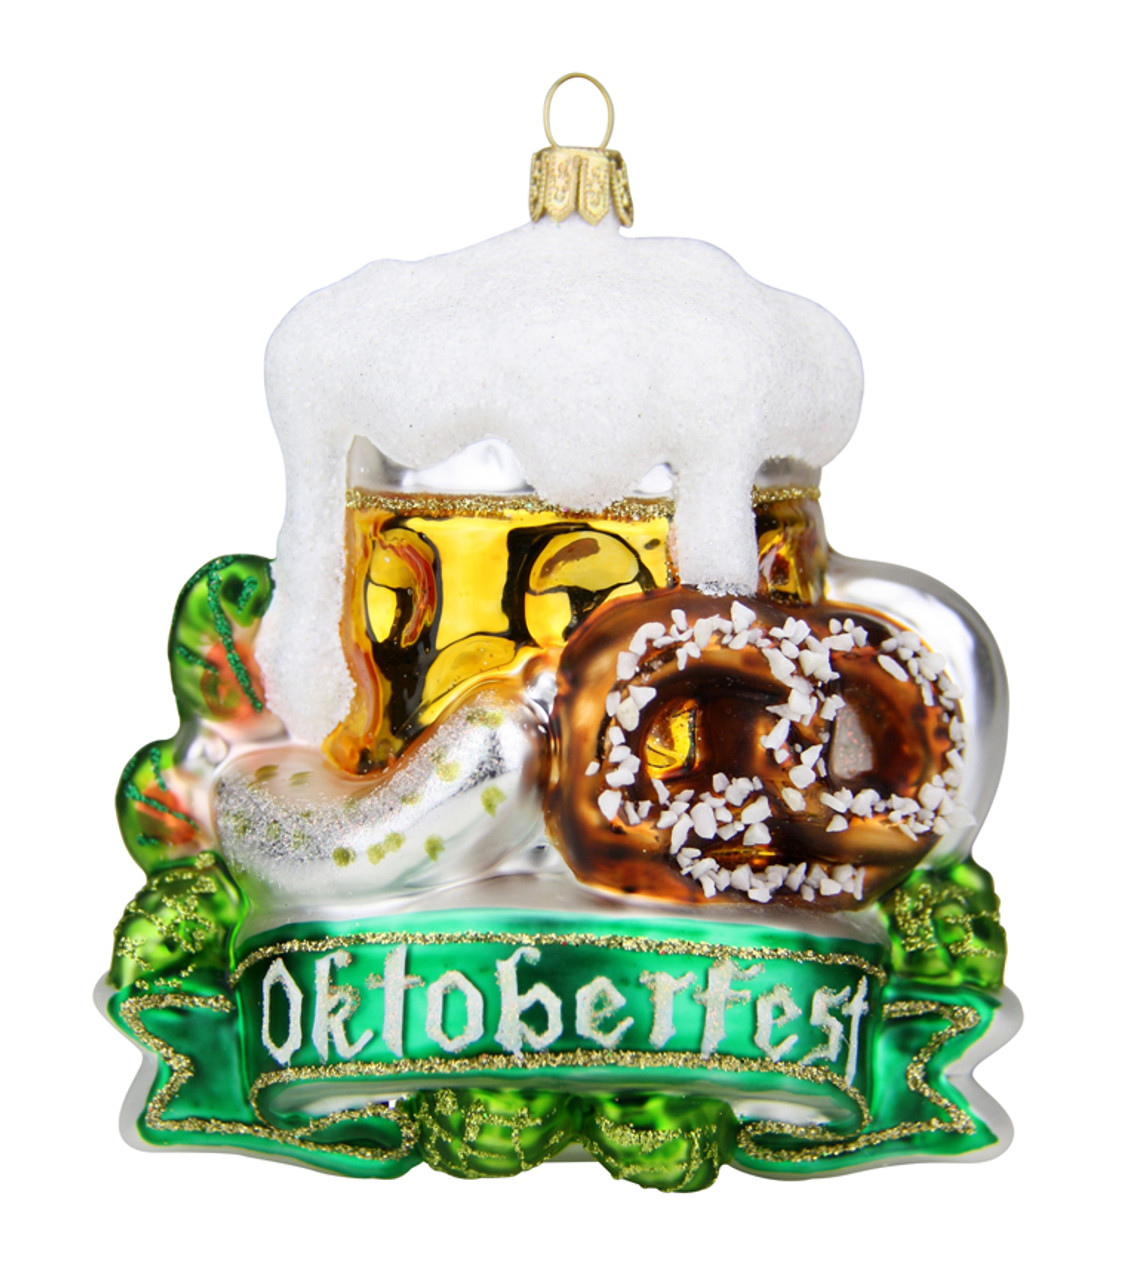 Oktoberfest Glass Christmas Ornament